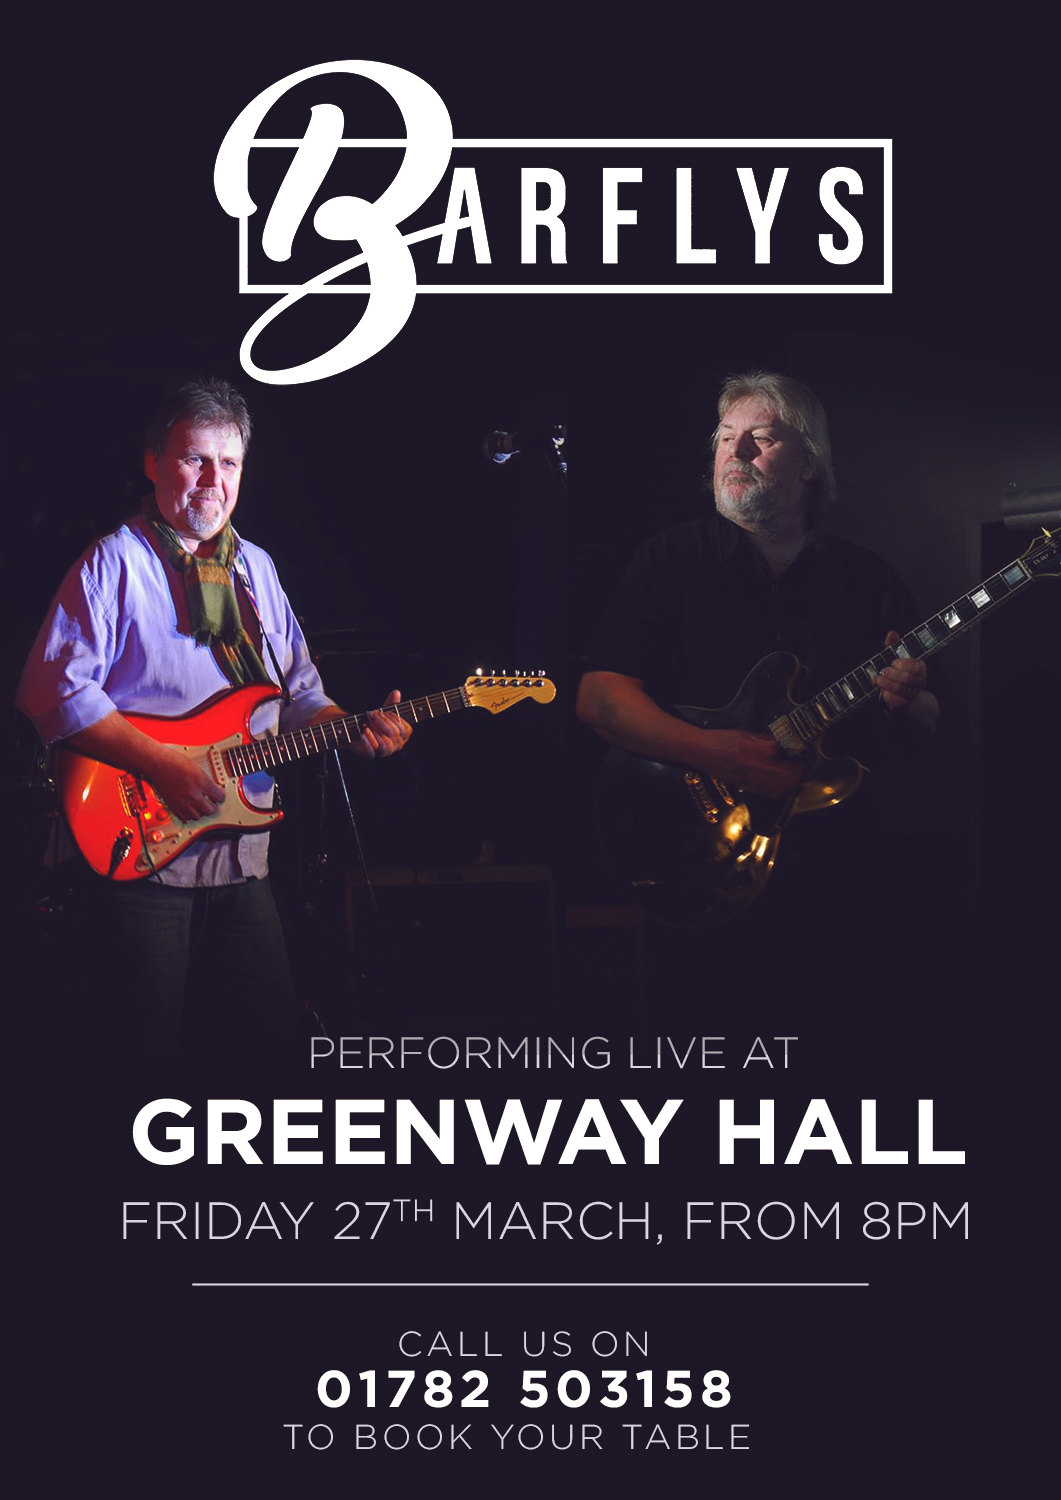 The Bar Flies are back and performing live at Greenway Hall on March 27th 2020